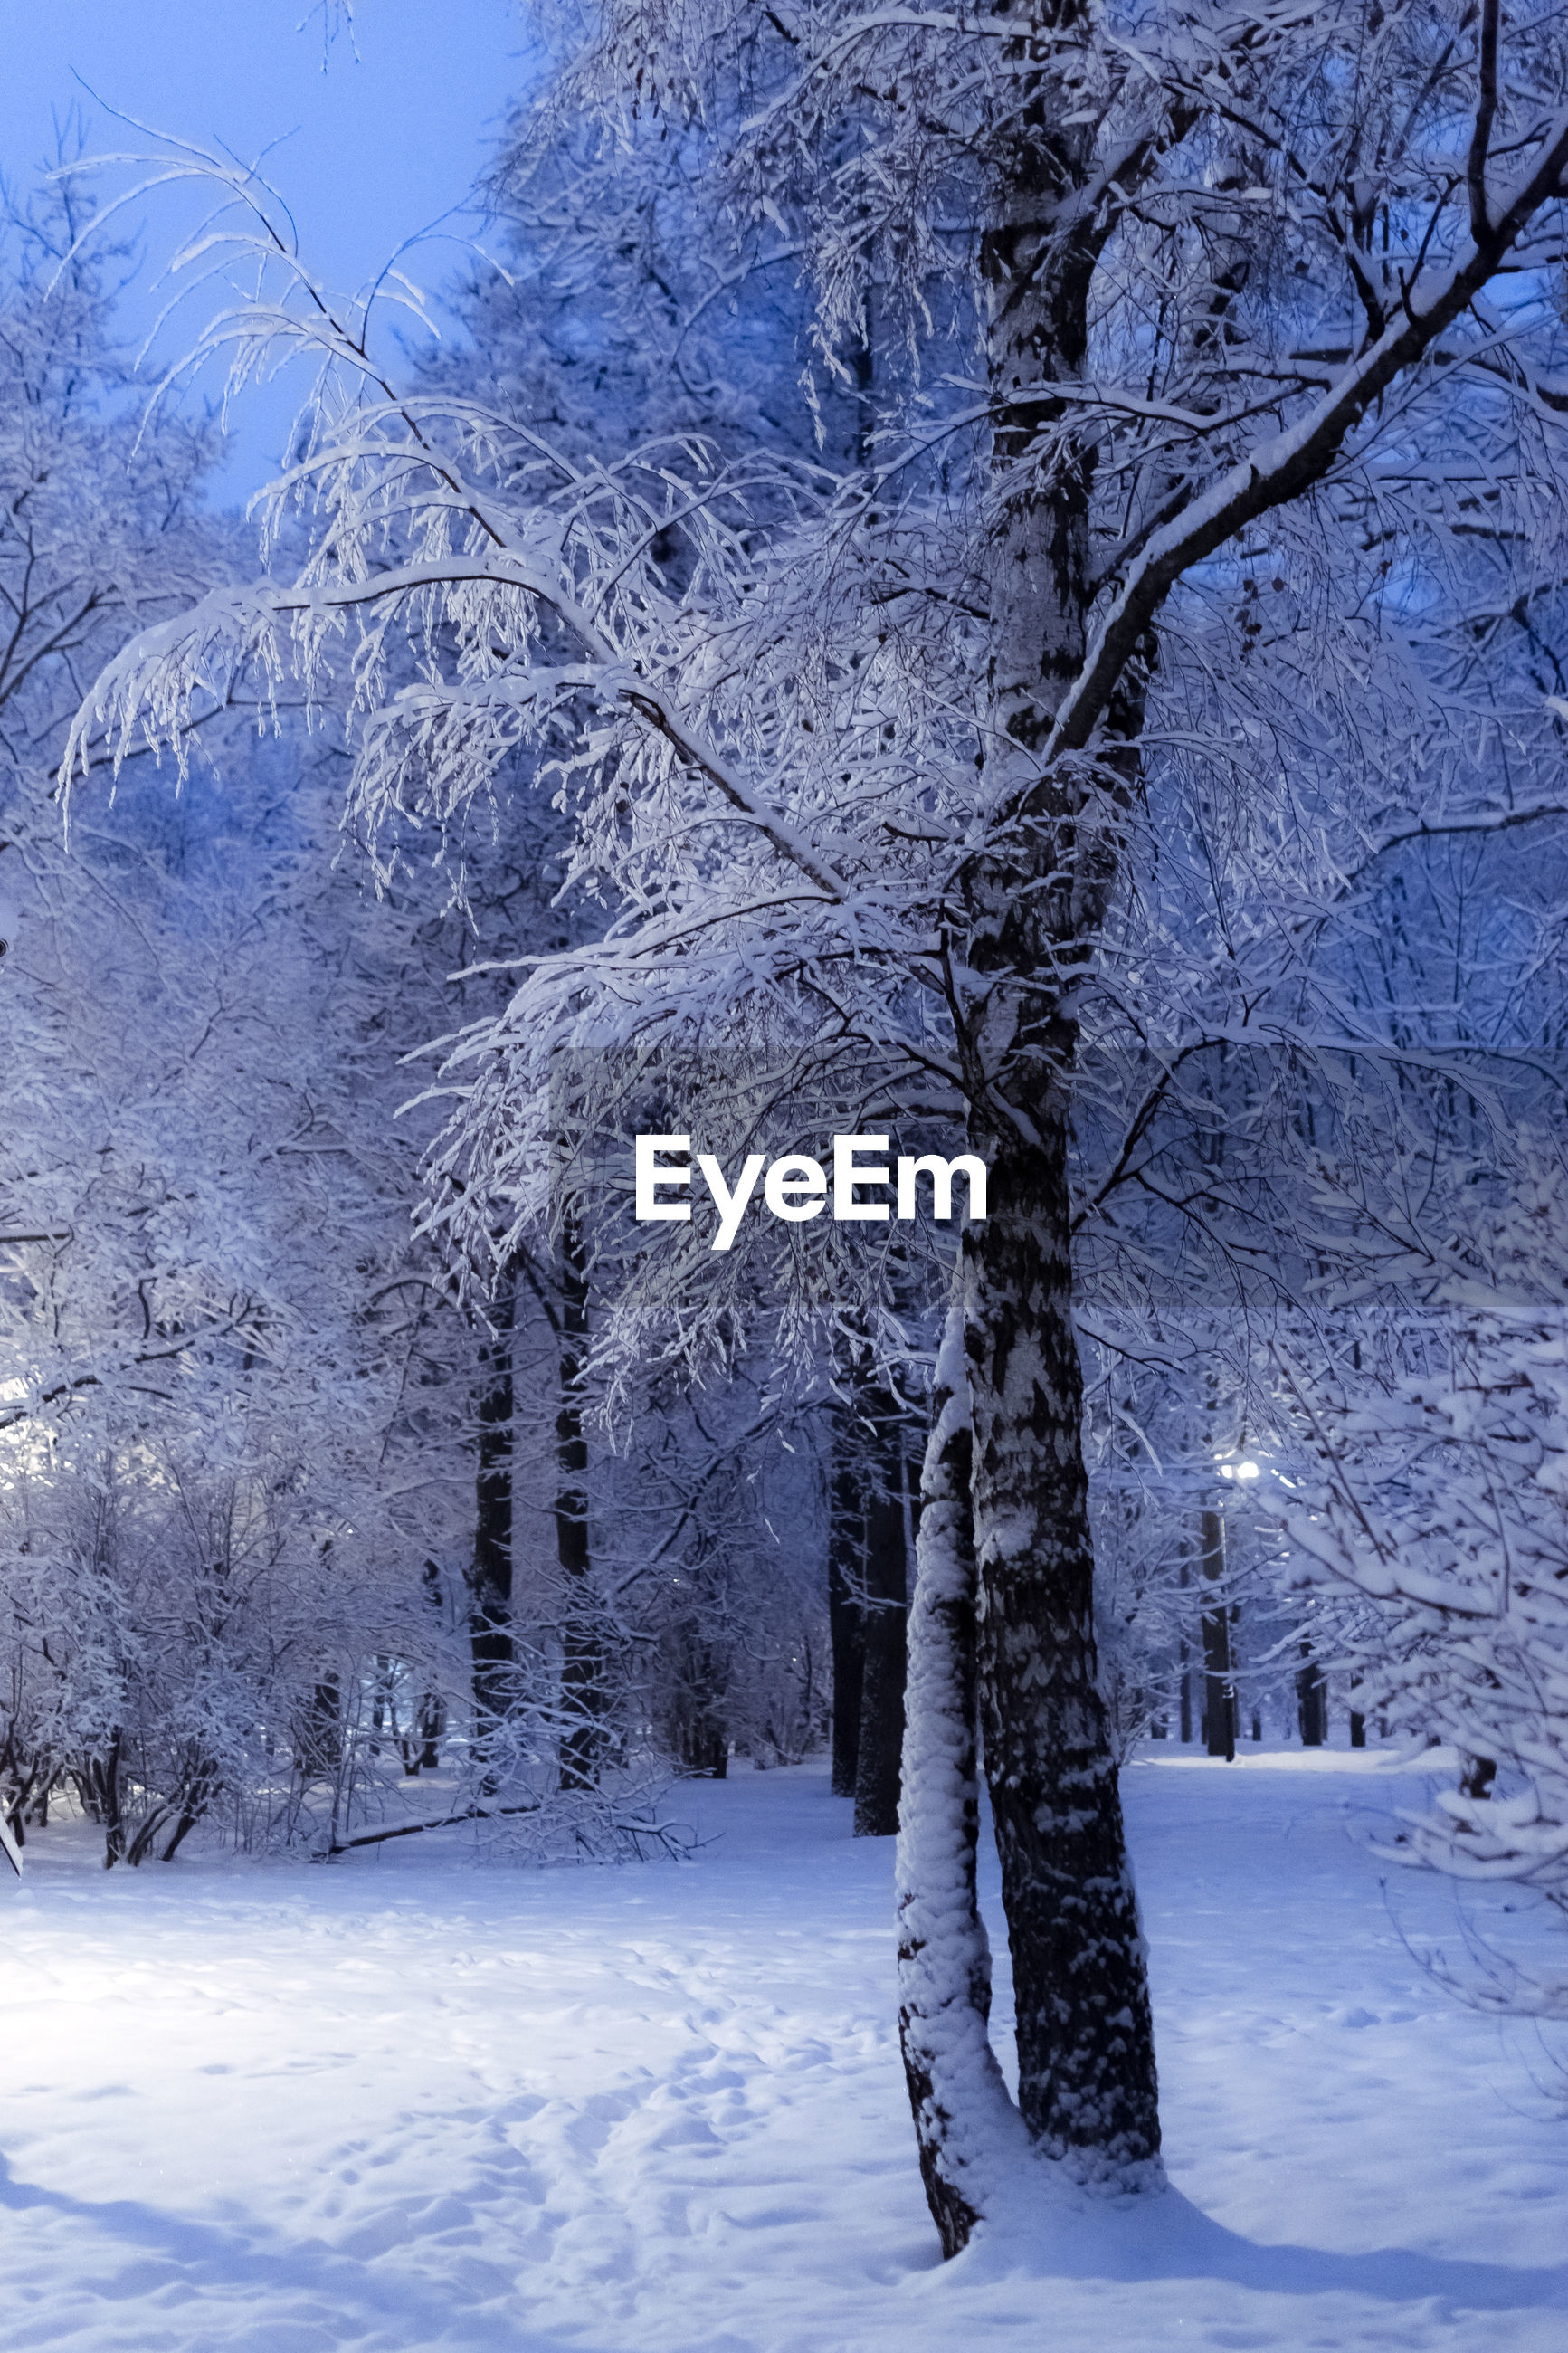 SNOW COVERED TREES ON LANDSCAPE